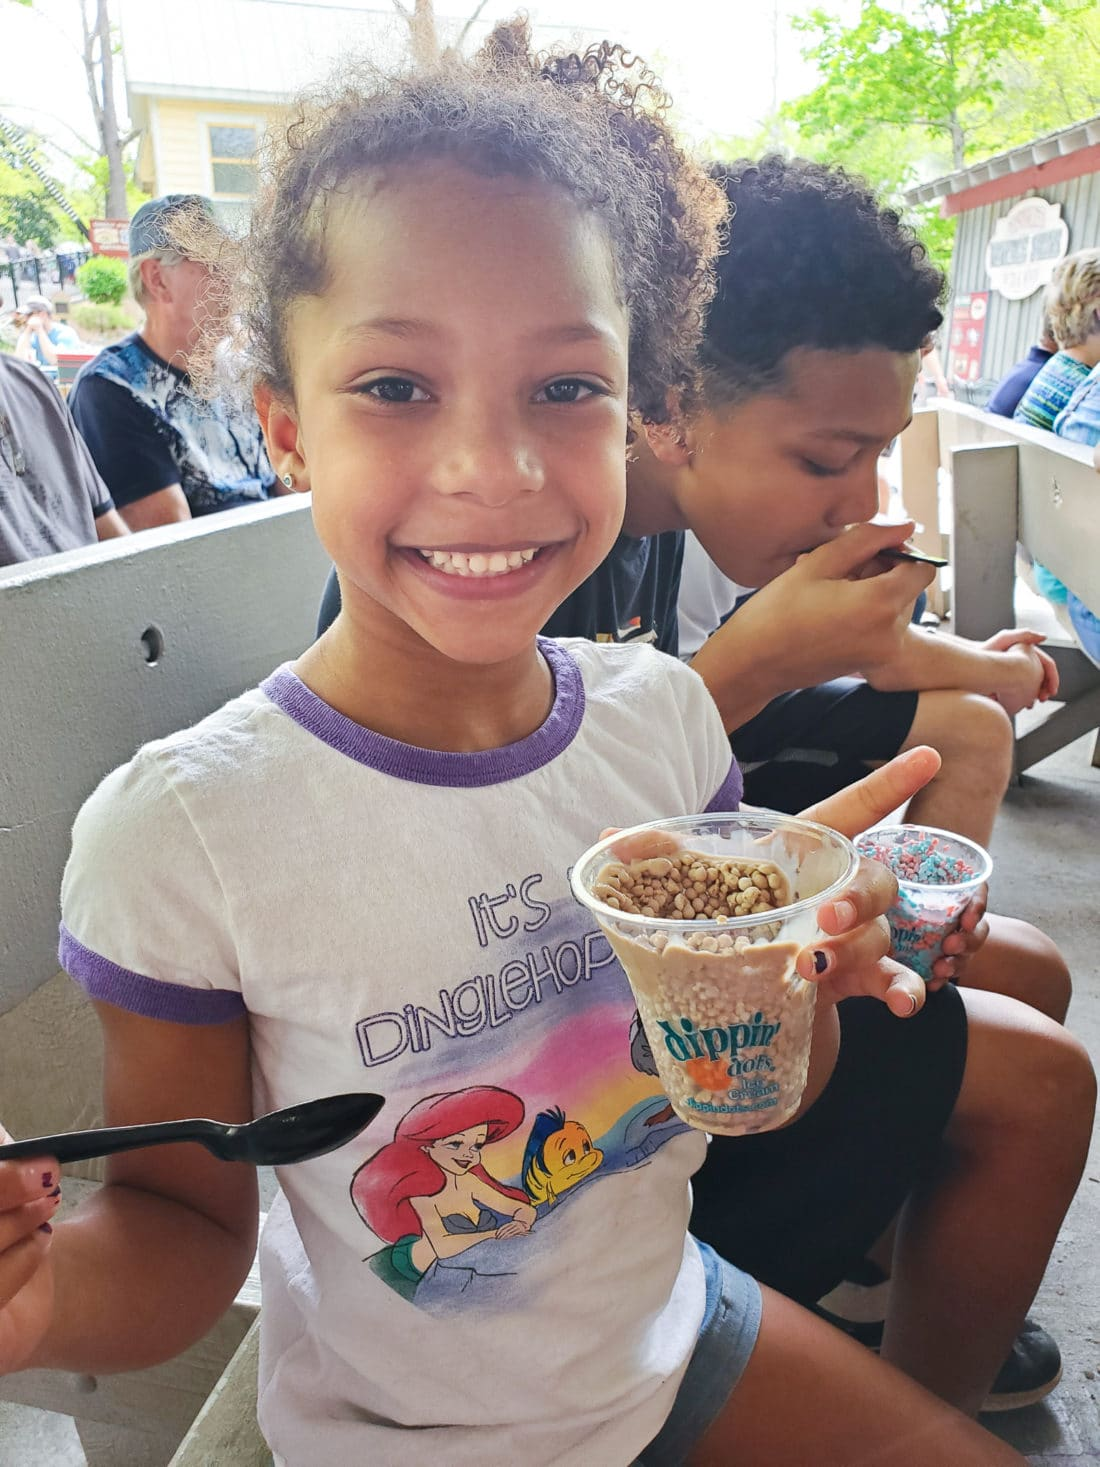 Dippin Dots Dollywood. My family spent the day playing and eating at the Dollywood theme park, and we are happy to report we had a blast! Read all about our trip and learn why Dollwood is a must visit destination while you are in Pigeon Forge, TN.